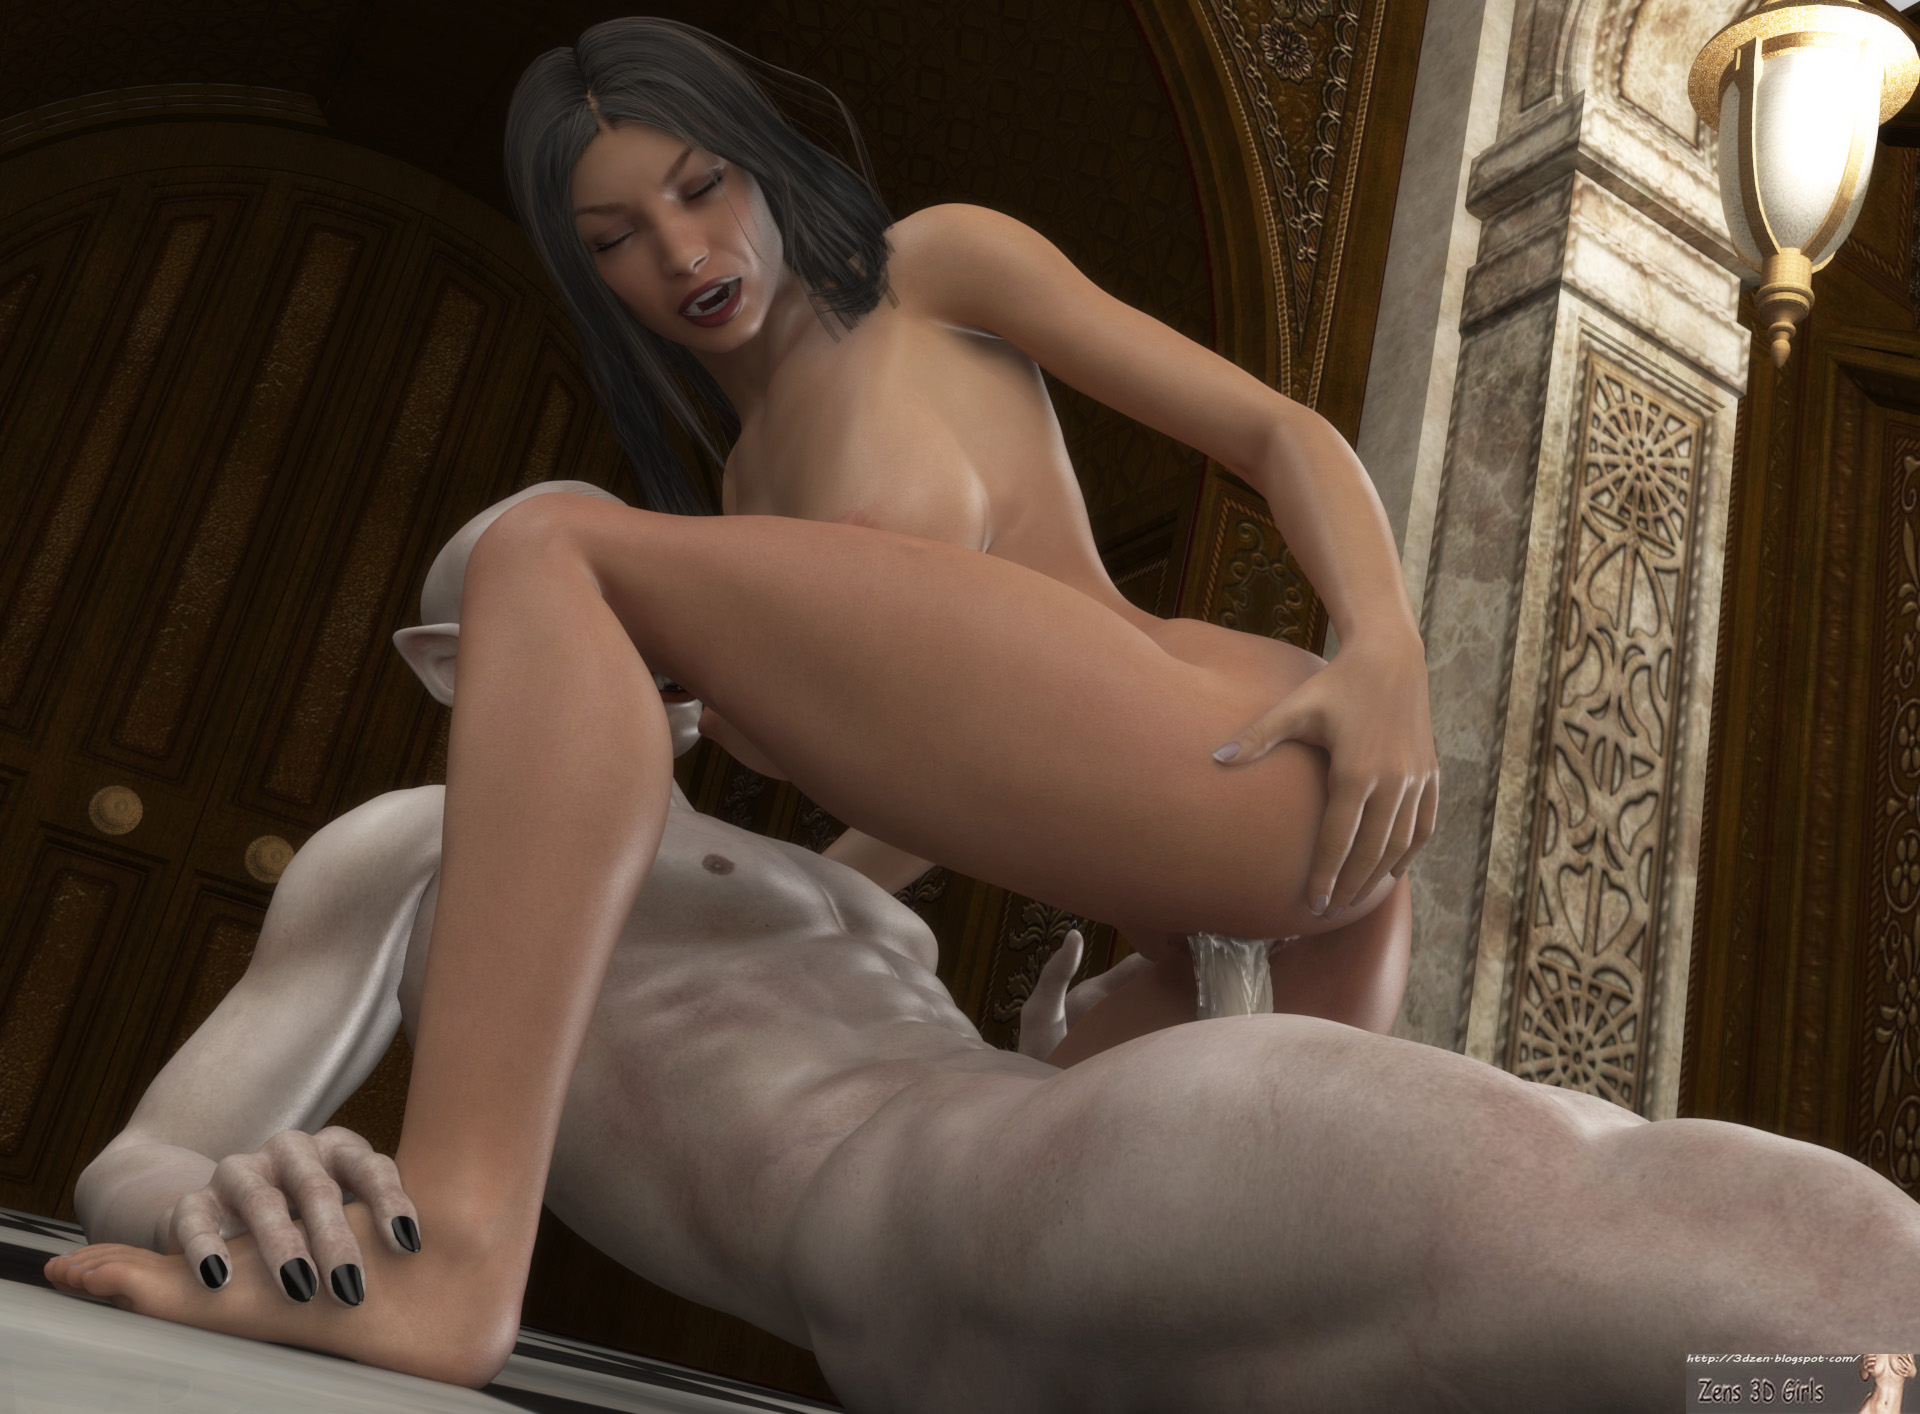 3DZen - Tanya sent to the Mansion